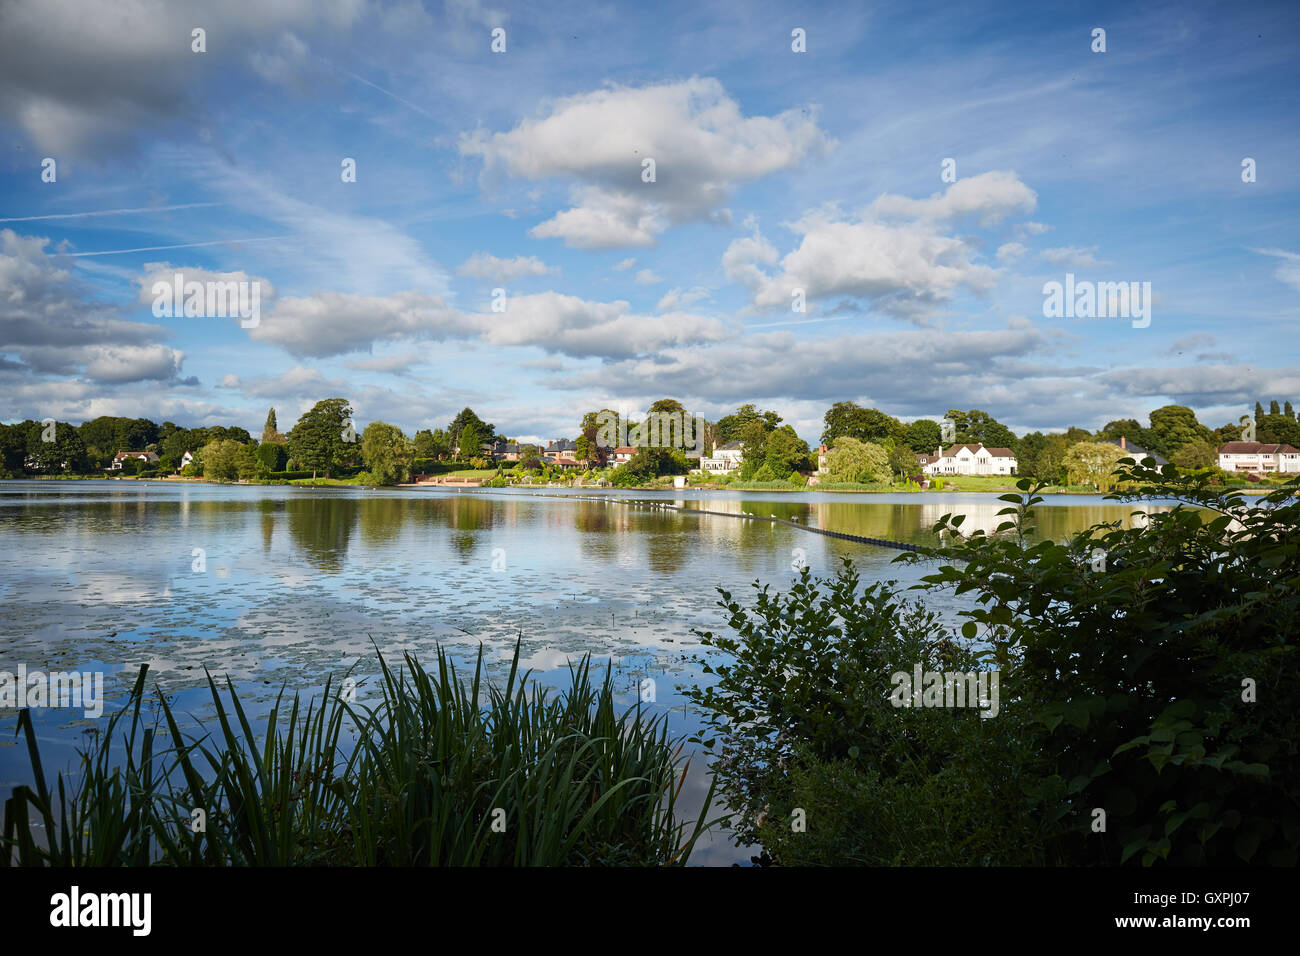 Knutsford Mere luxury houses   Quality deluxe luxury posh well hi-class rich cut above money wealth landmark Mereside - Stock Image